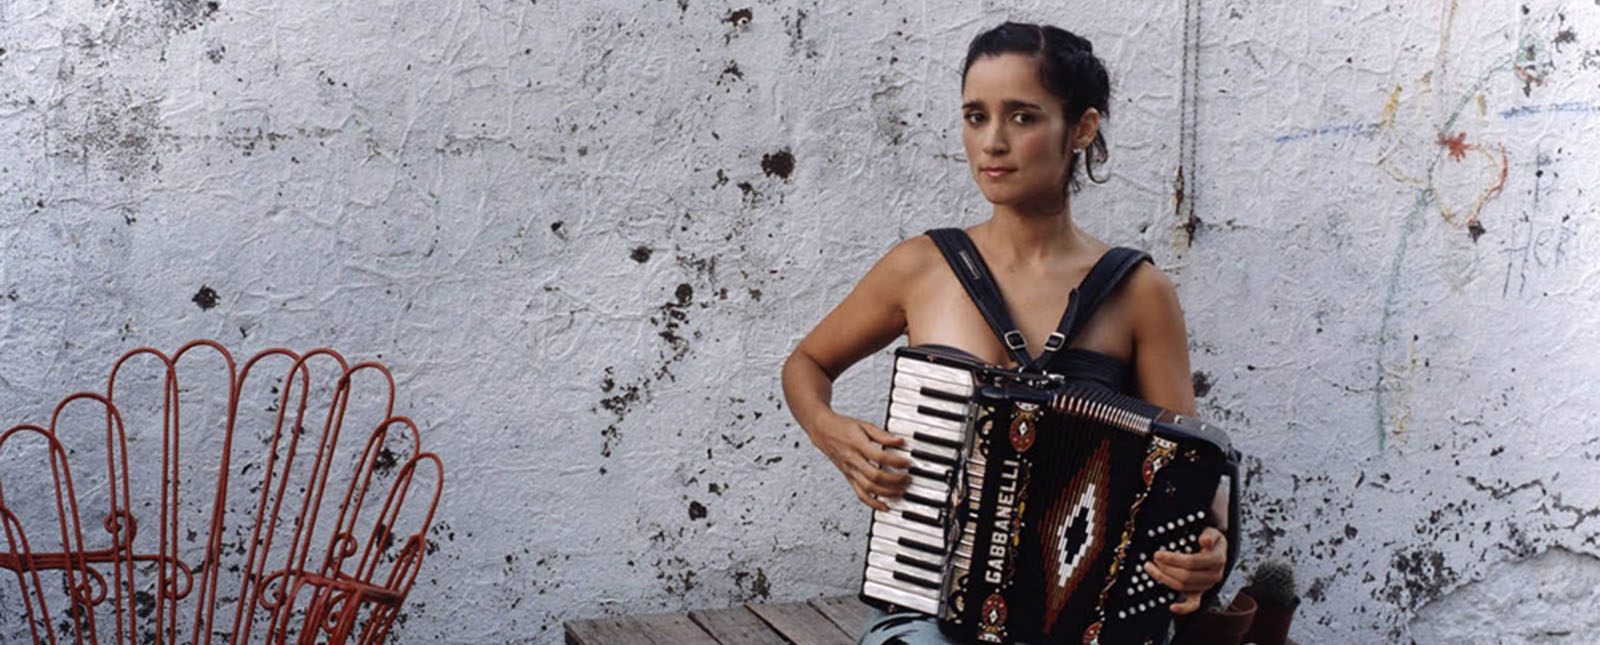 julieta-venegas-radio-playlist-nuevo-disco-2